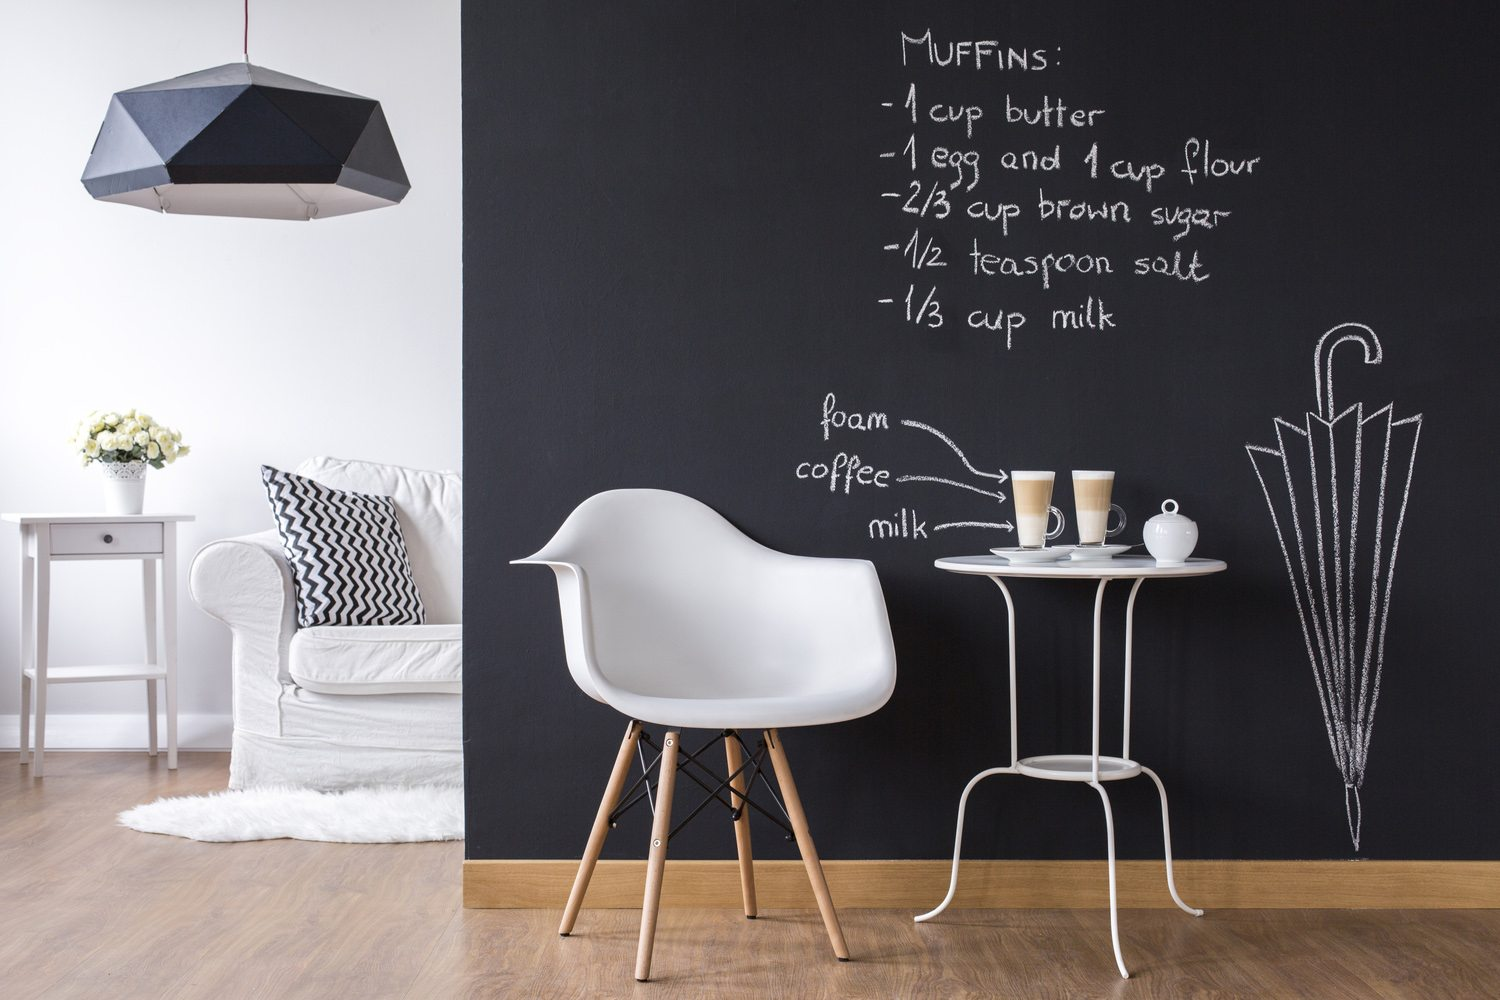 Tips on using chalkboard paint | The Paint People